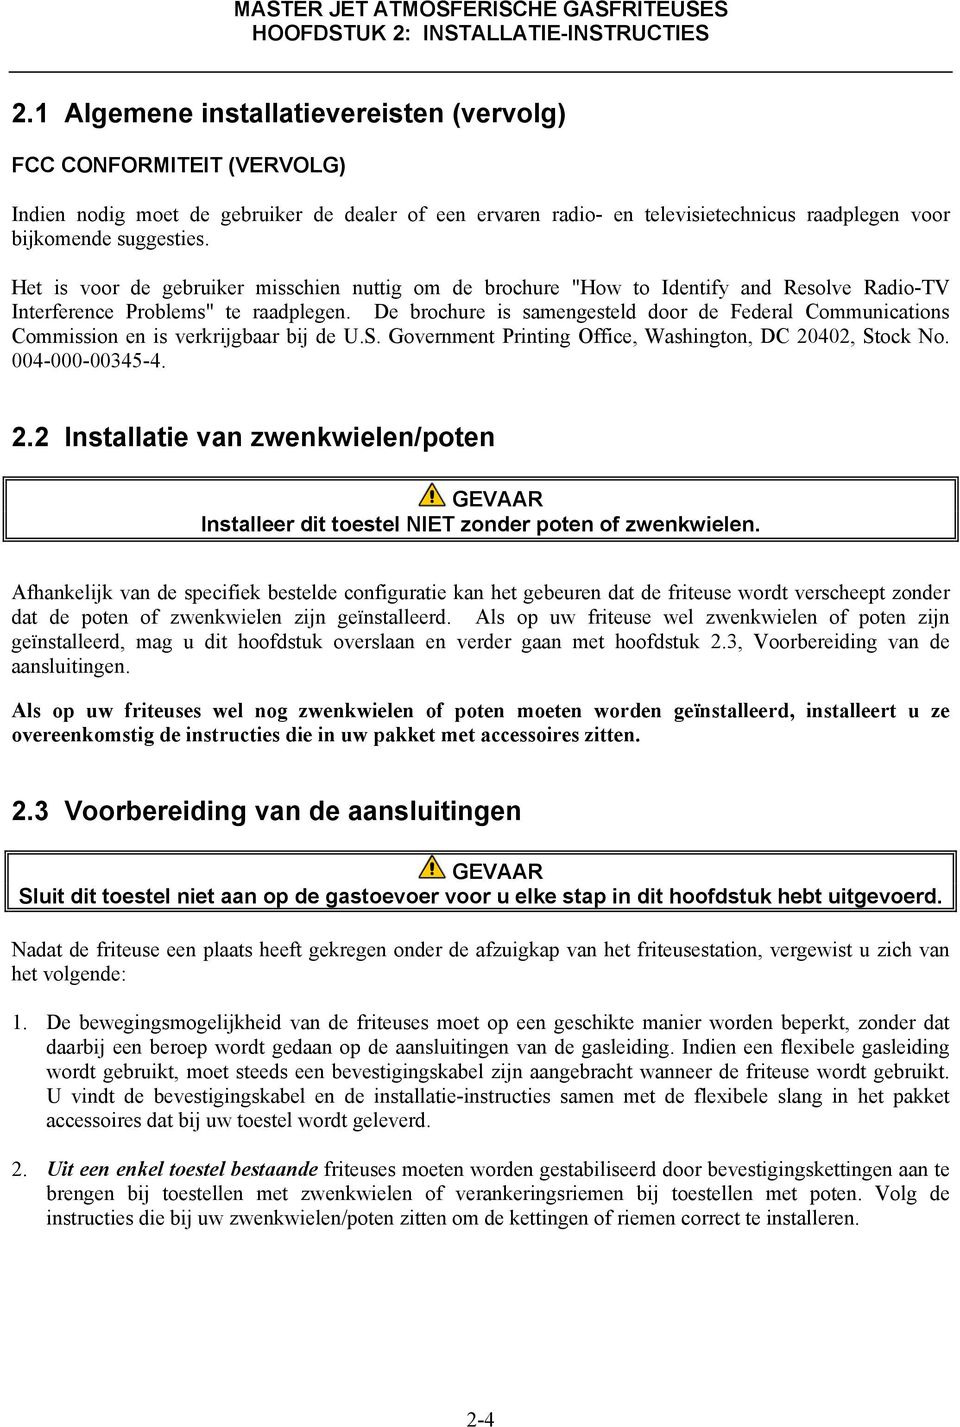 "Het is voor de gebruiker misschien nuttig om de brochure ""How to Identify and Resolve Radio-TV Interference Problems"" te raadplegen."